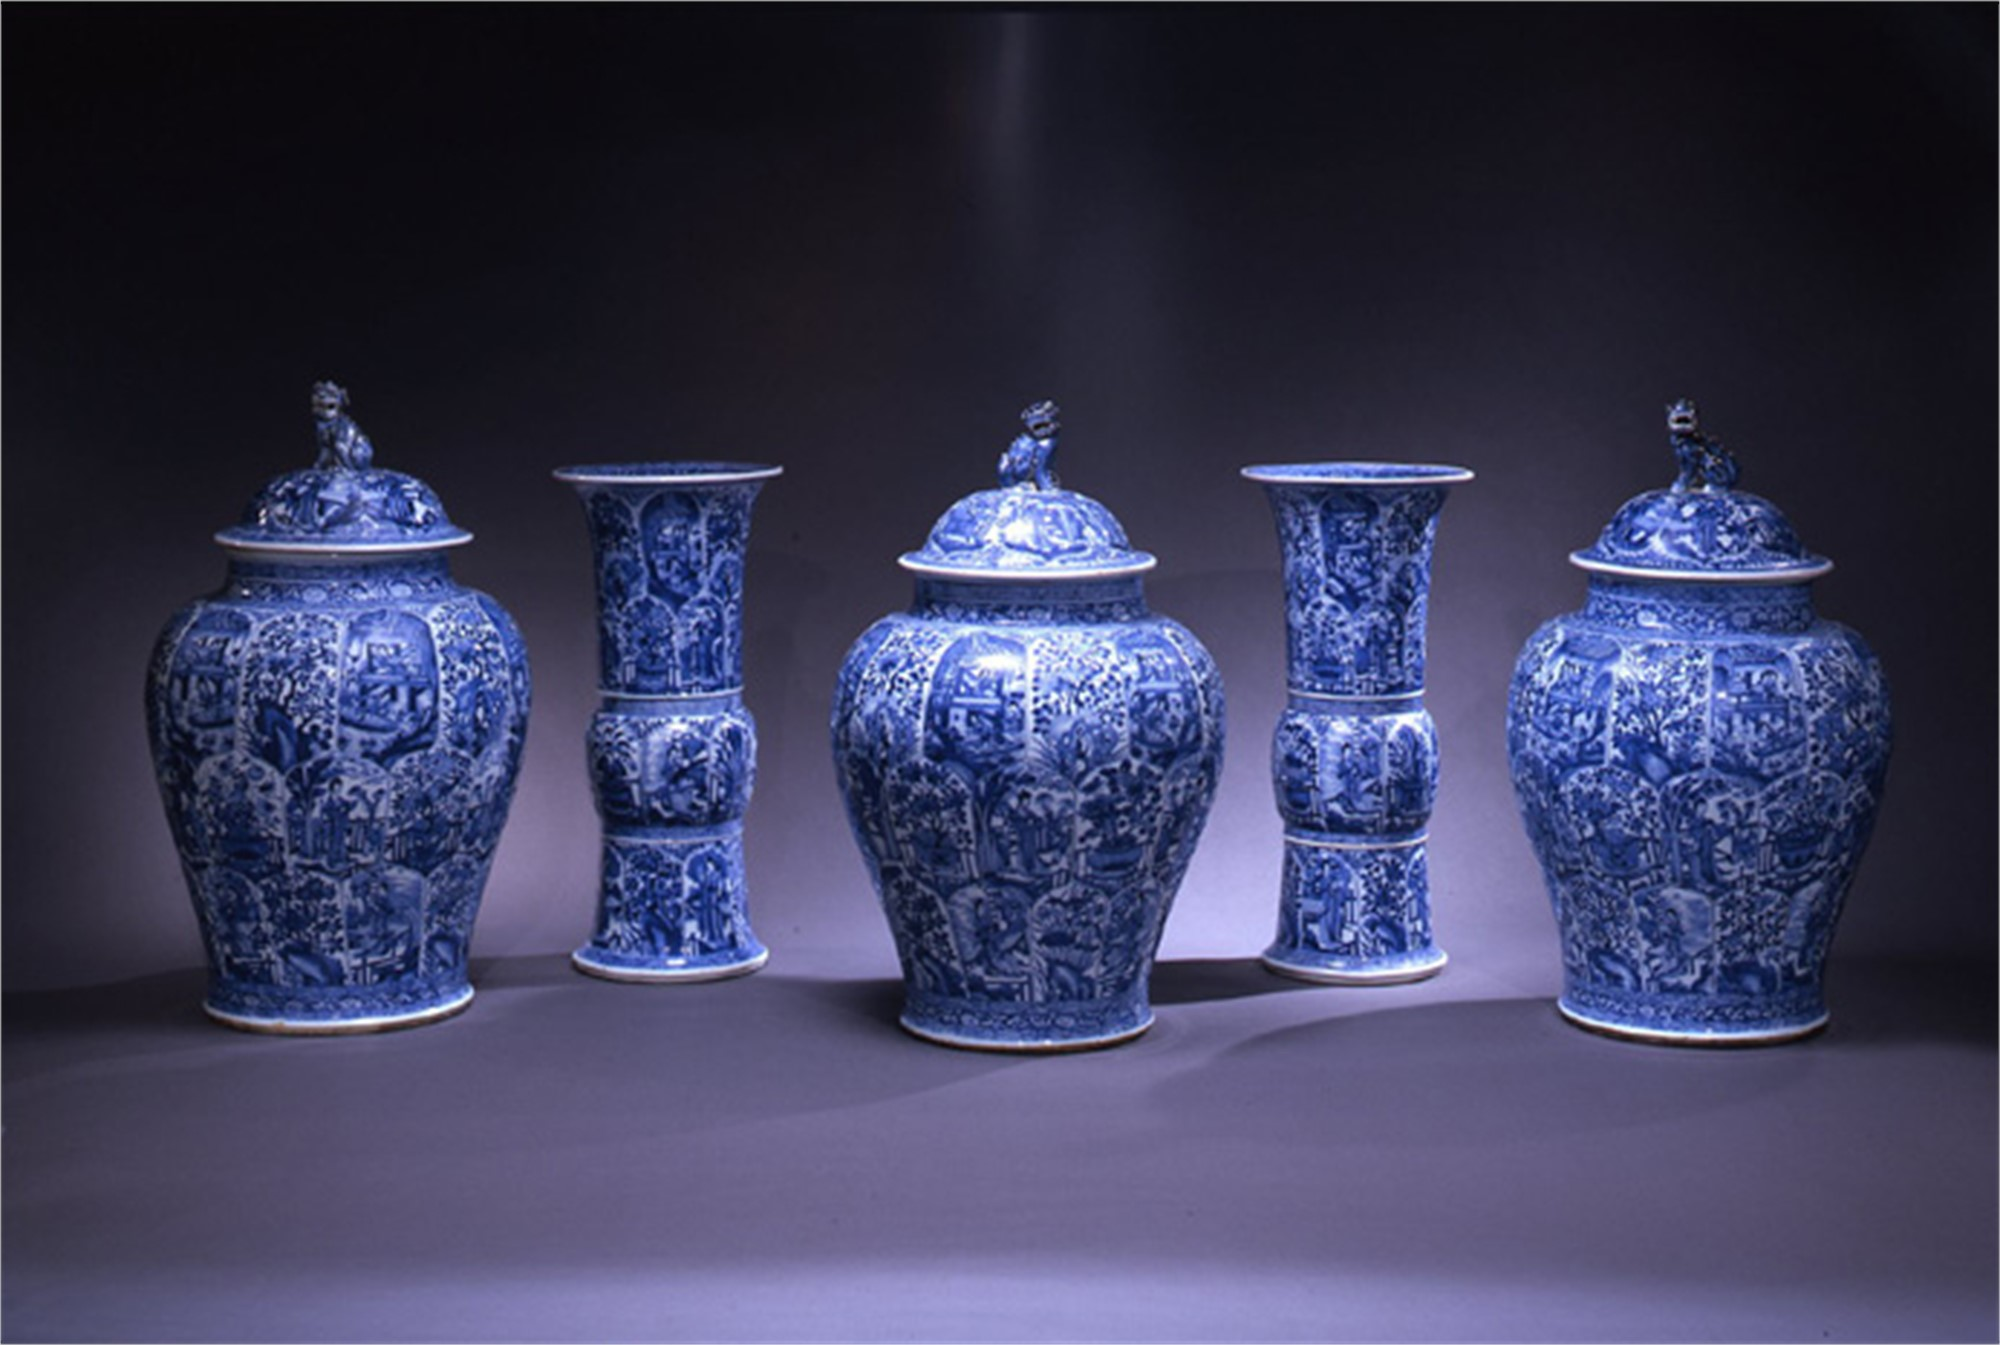 LARGE CHINESE EXPORT PORCELAIN BLUE AND WHITE GARNITURE